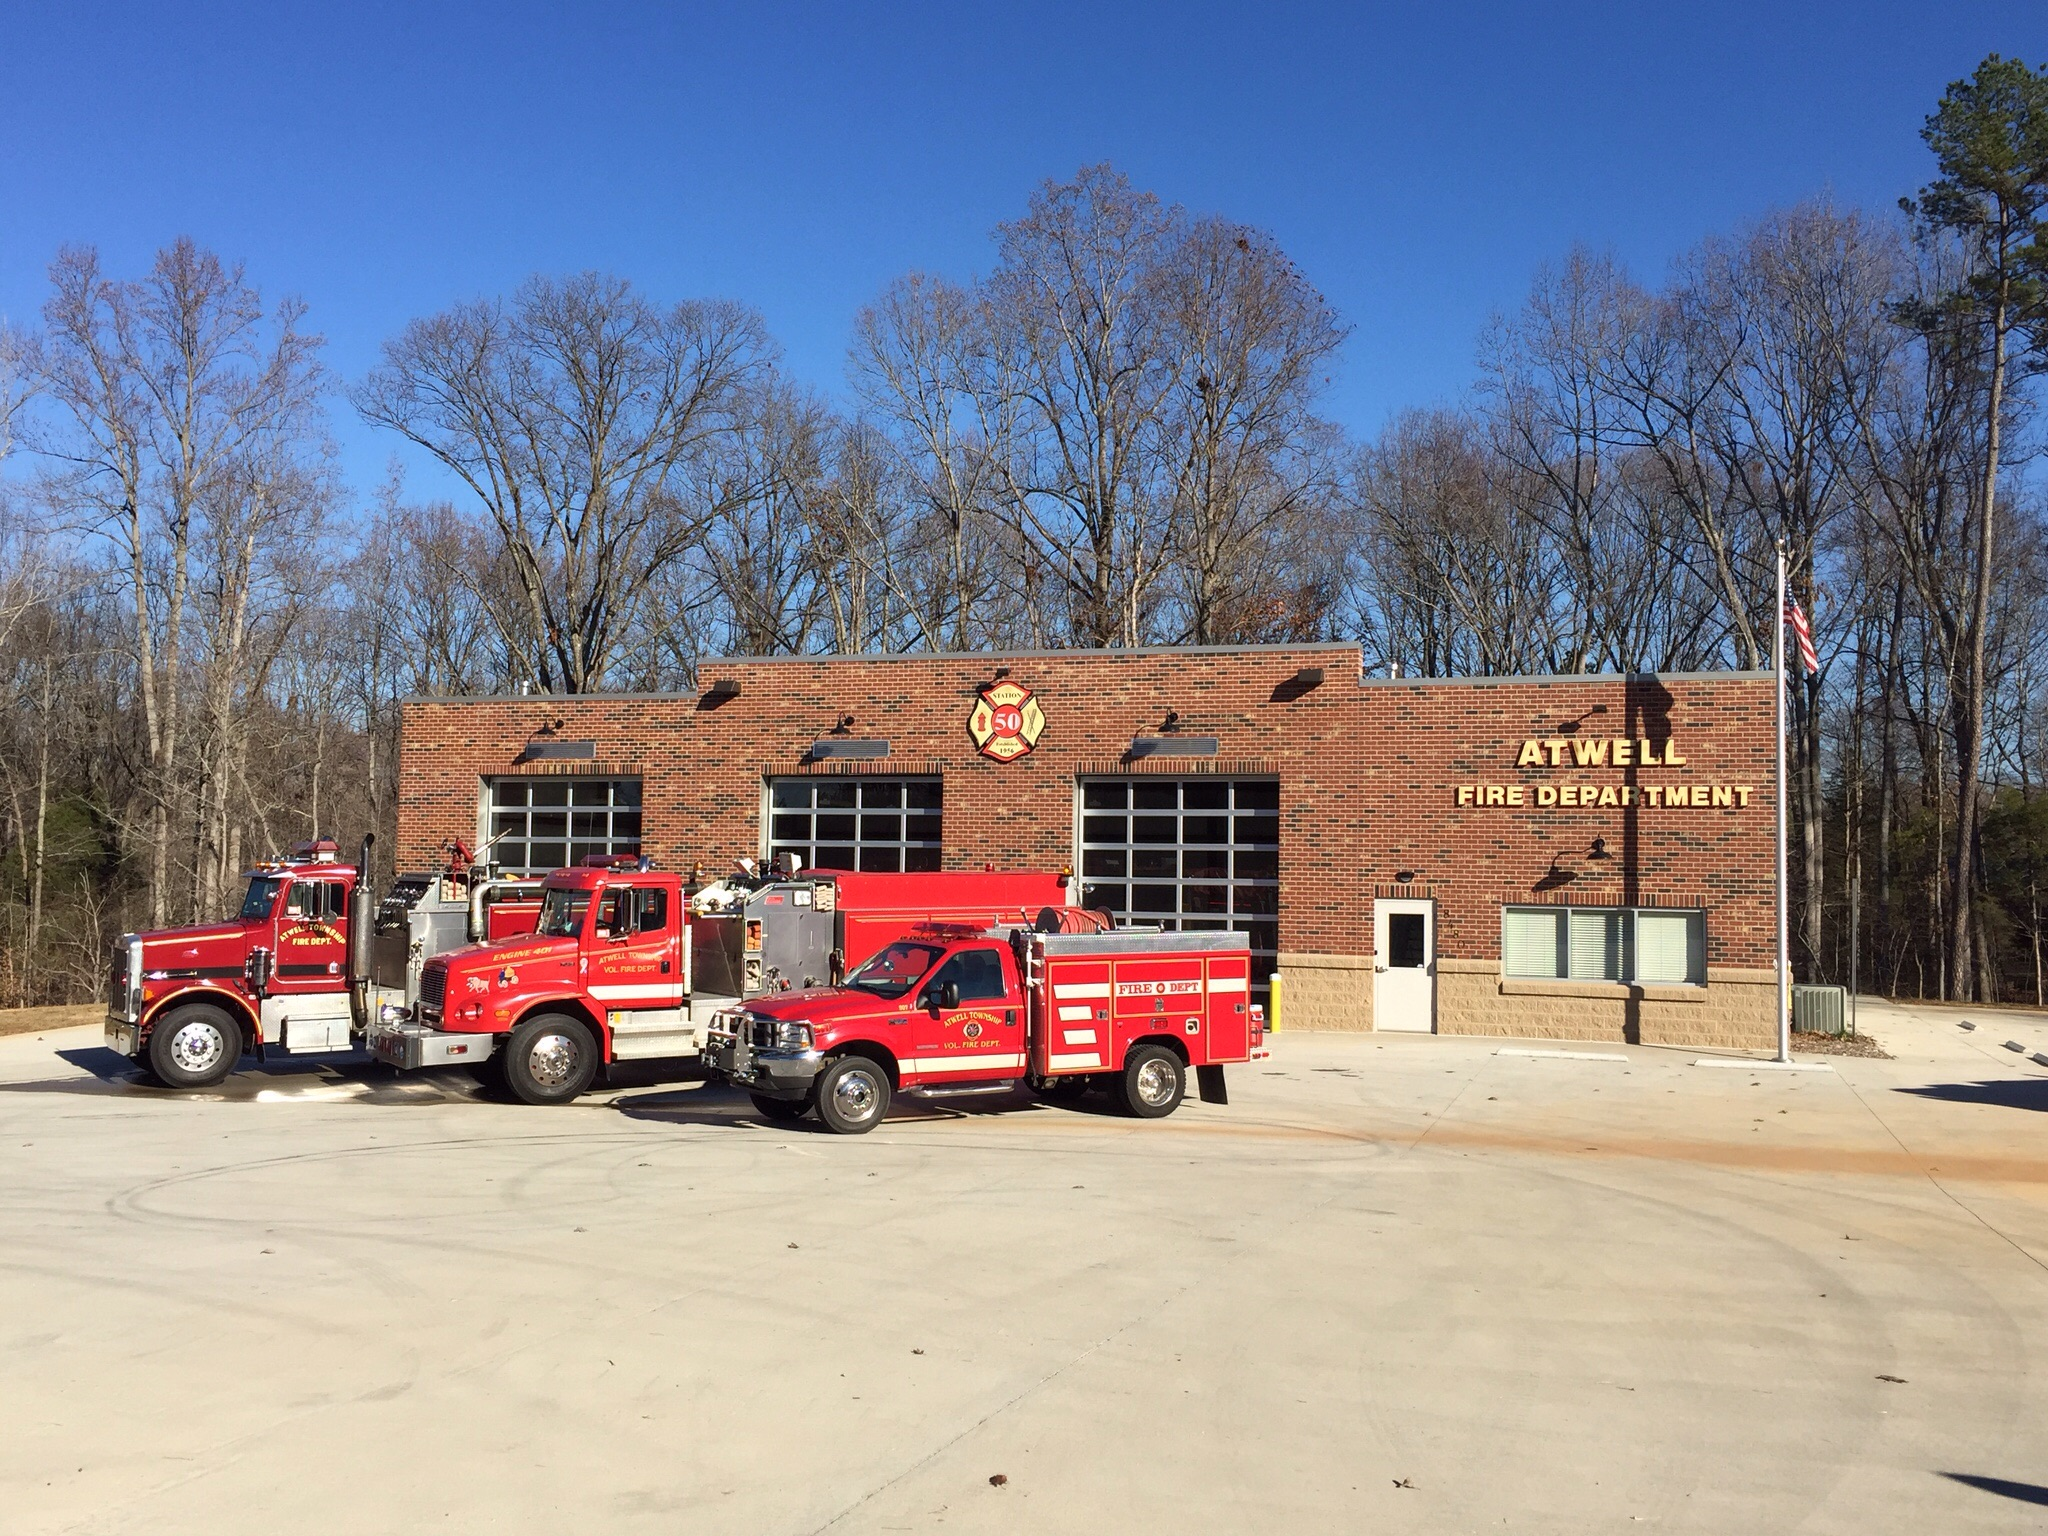 Station 50 with trucks